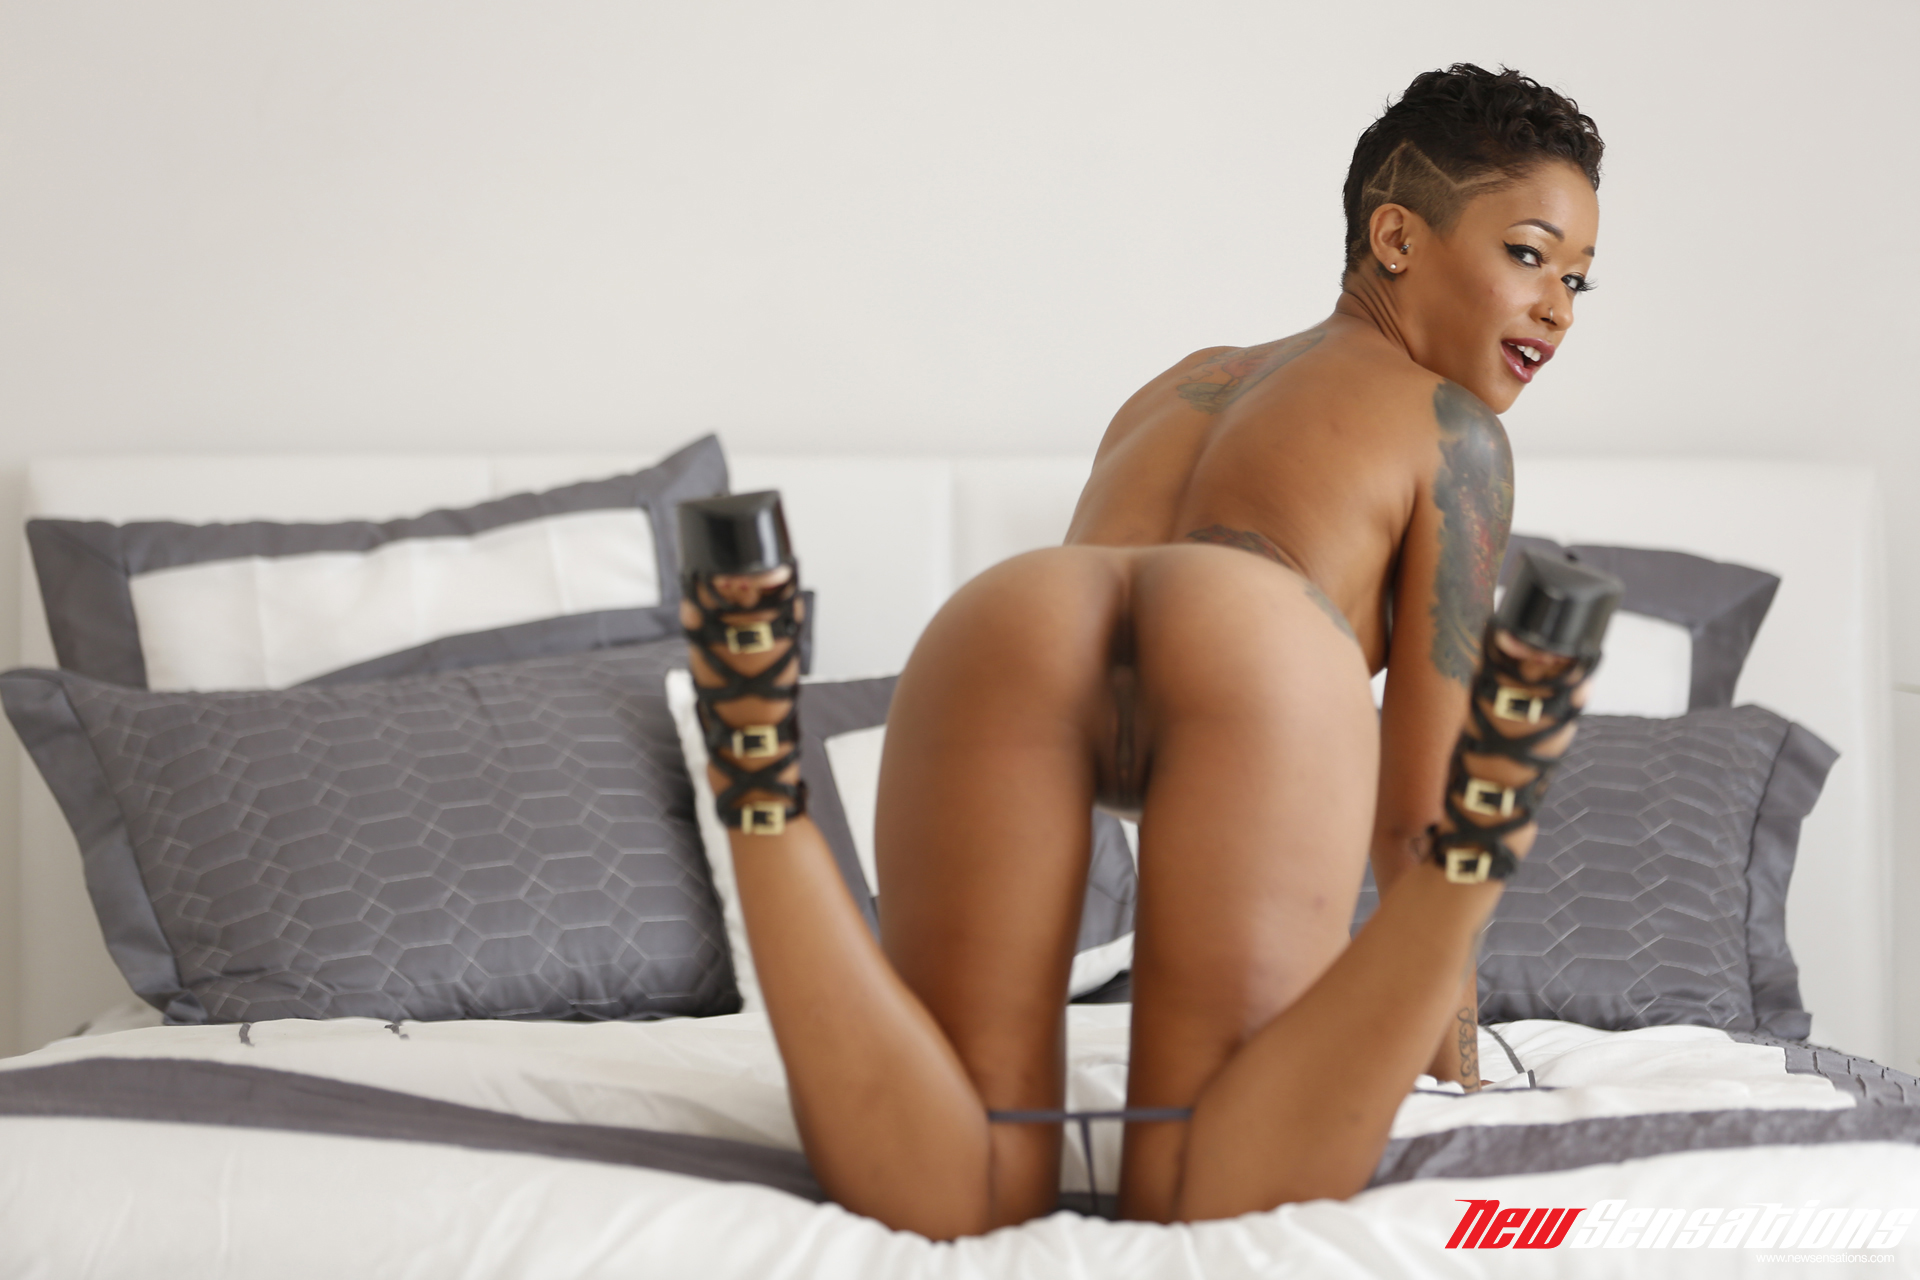 Been trying ebony sexy black girls love